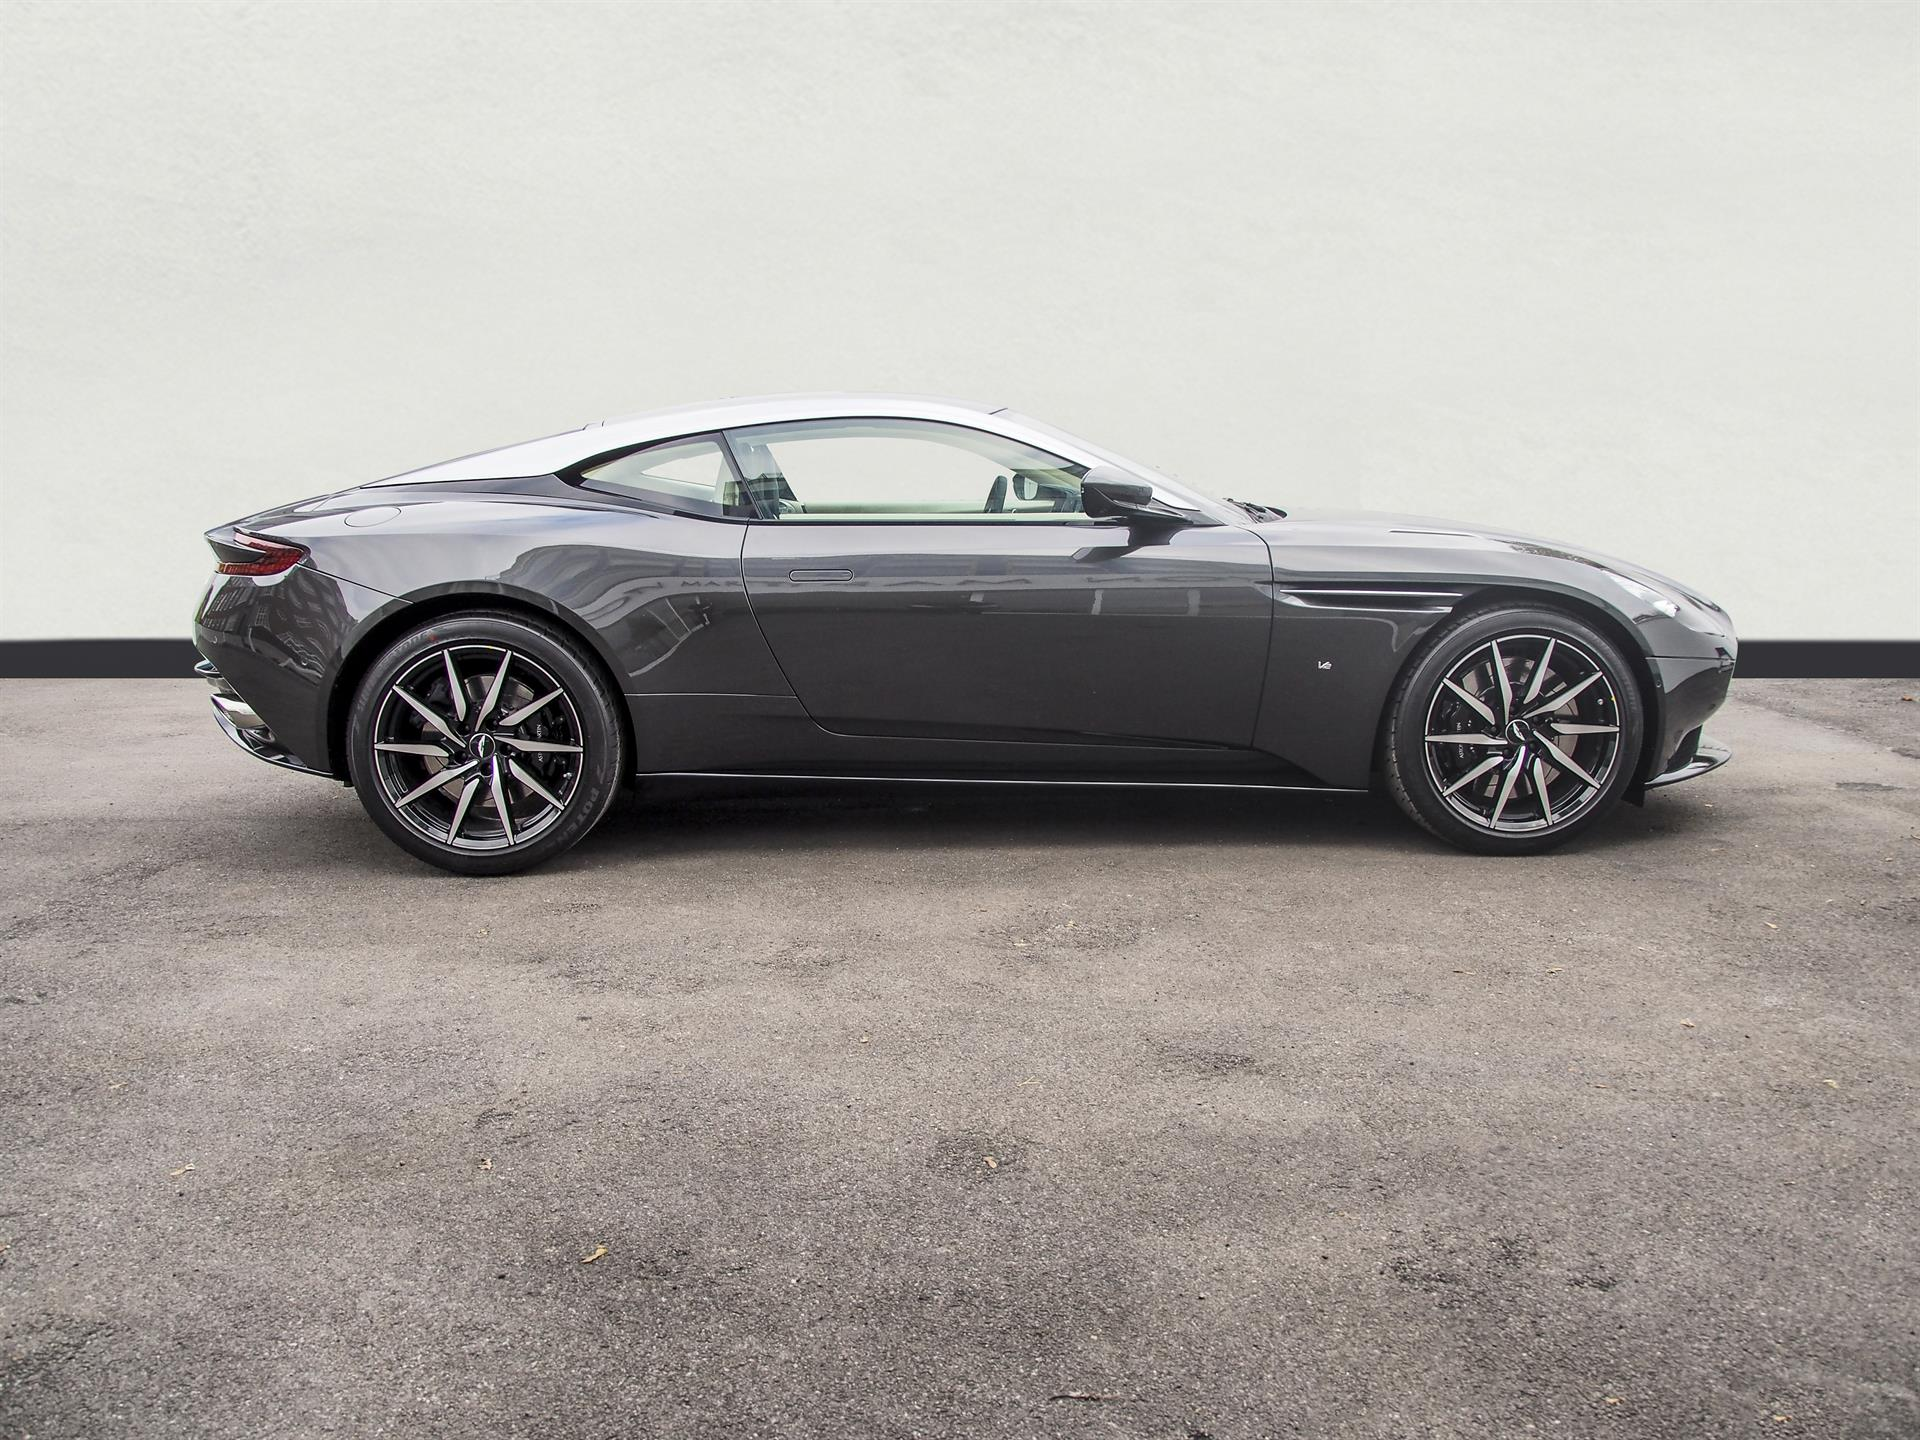 aston martin lagonda pre owned used aston martins car details db11 coupe l5303. Black Bedroom Furniture Sets. Home Design Ideas